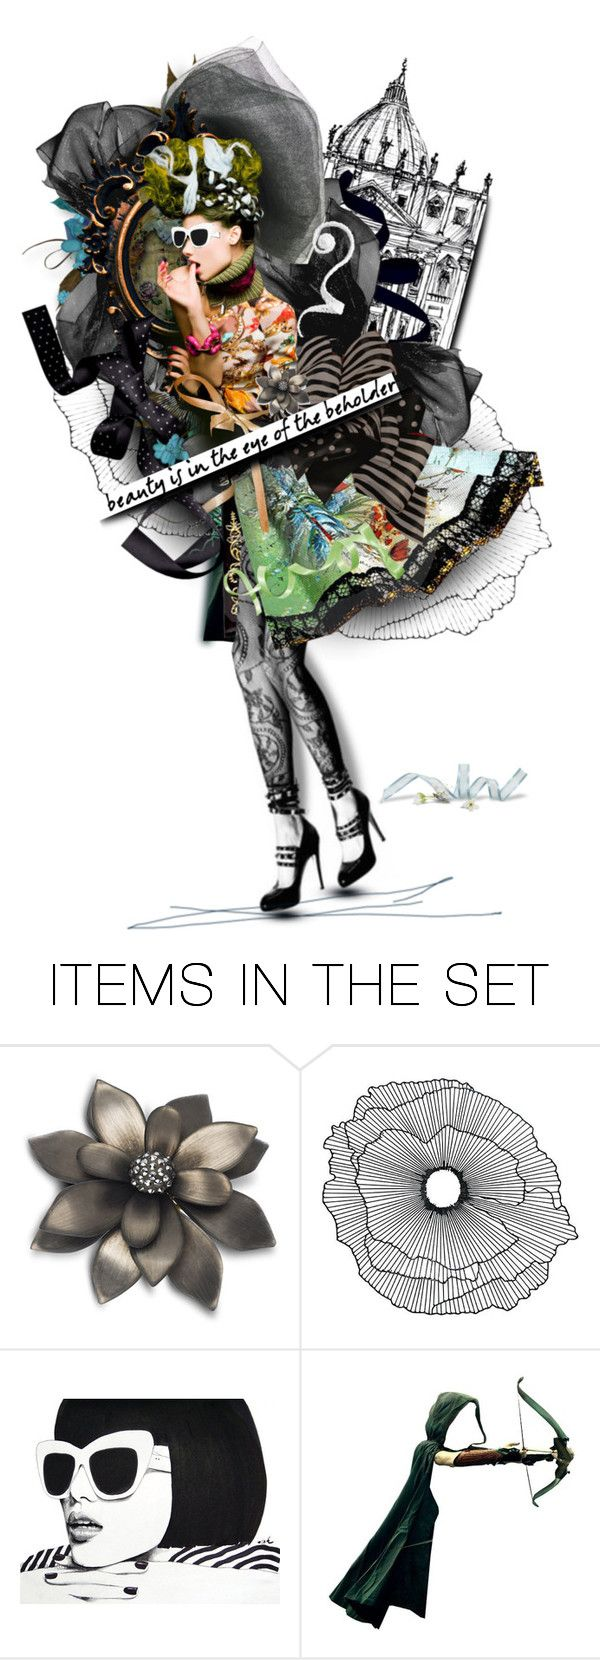 """""""Dressed in Ribbons and Bows"""" by gailwind ❤ liked on Polyvore featuring art"""